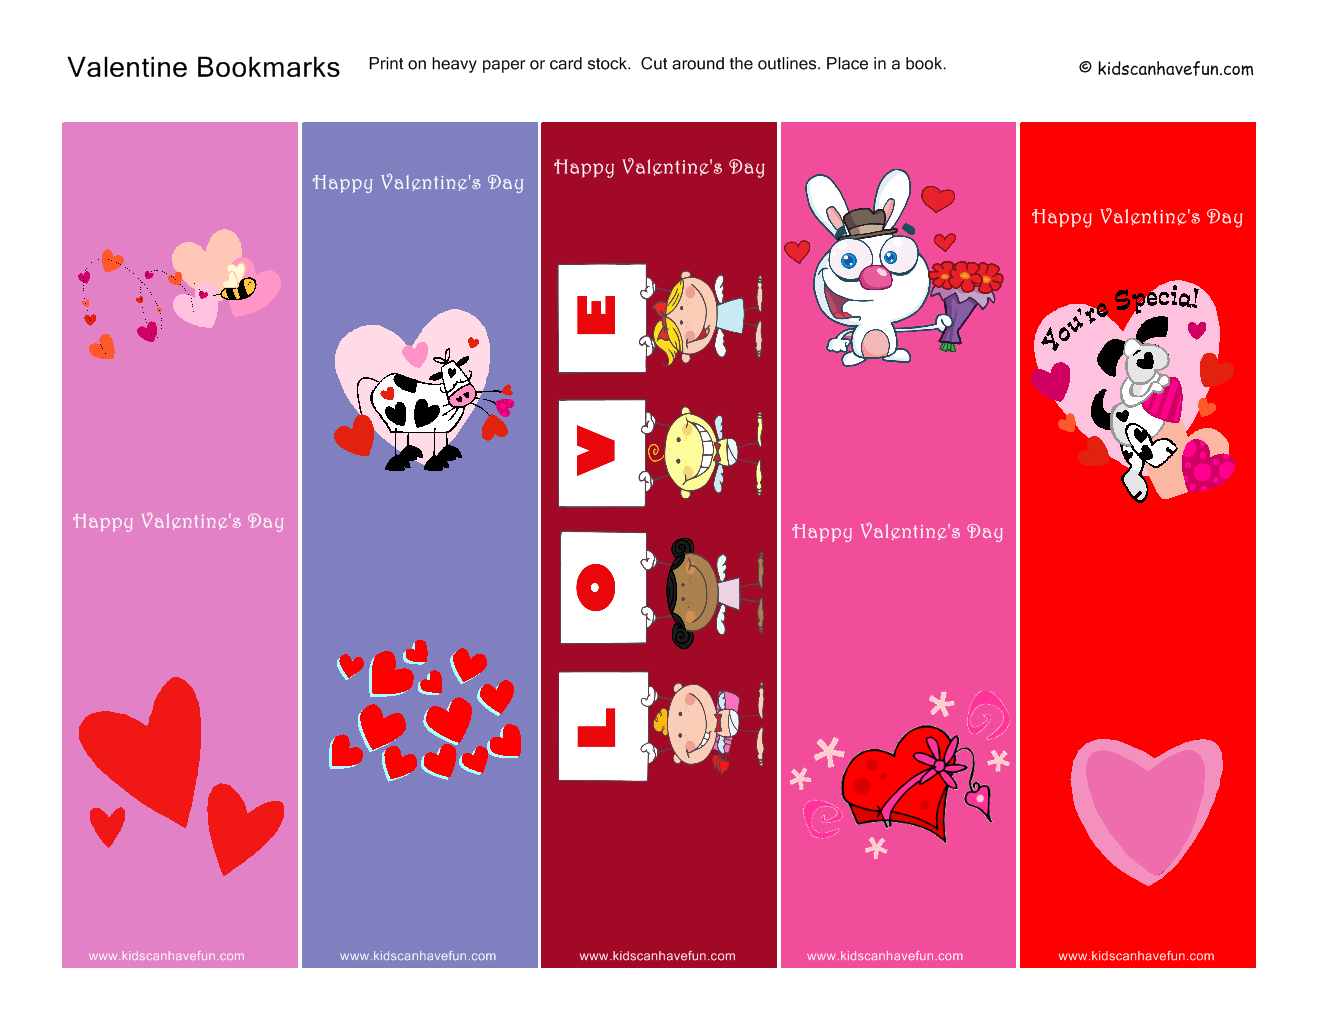 Valentines Day Printables – Free Printable Valentine Cards for Friends